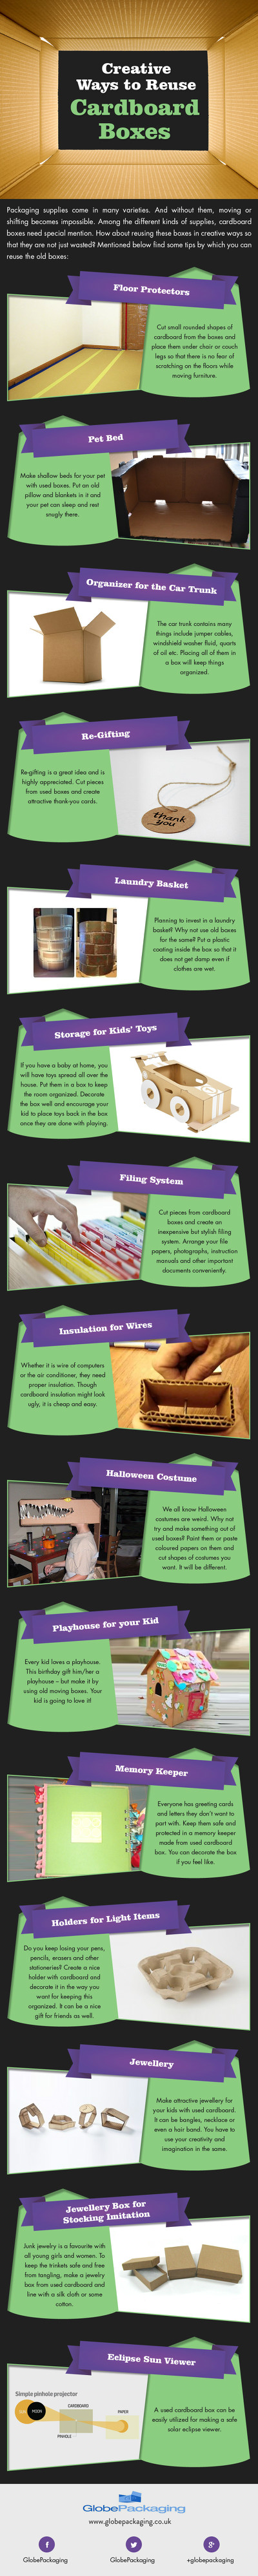 Creative Ways to Reuse Cardboard Boxes [Infographic]